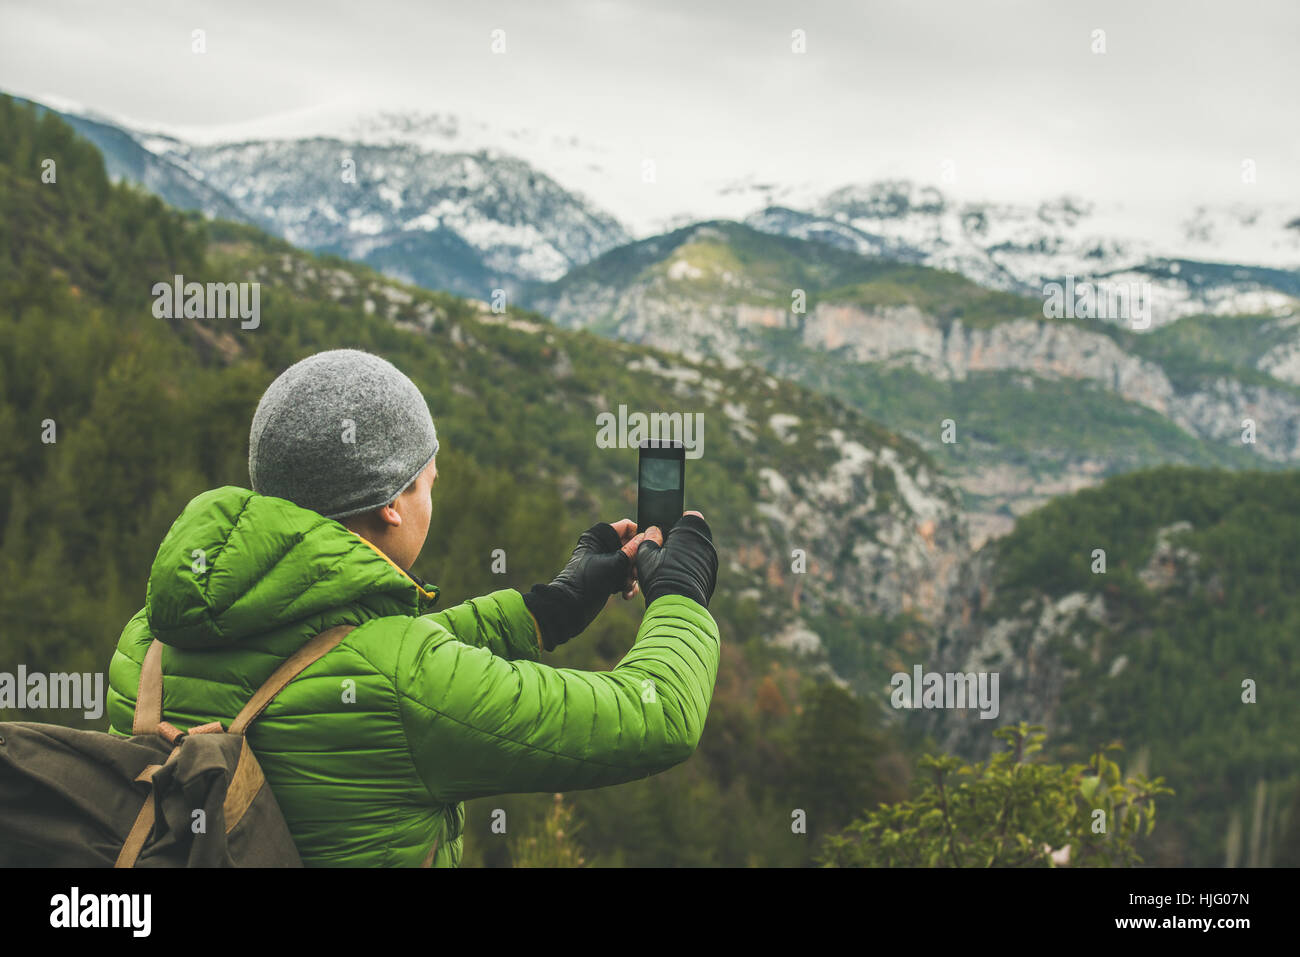 Young man traveller making photo of mountains, Alanya, Turkey - Stock Image